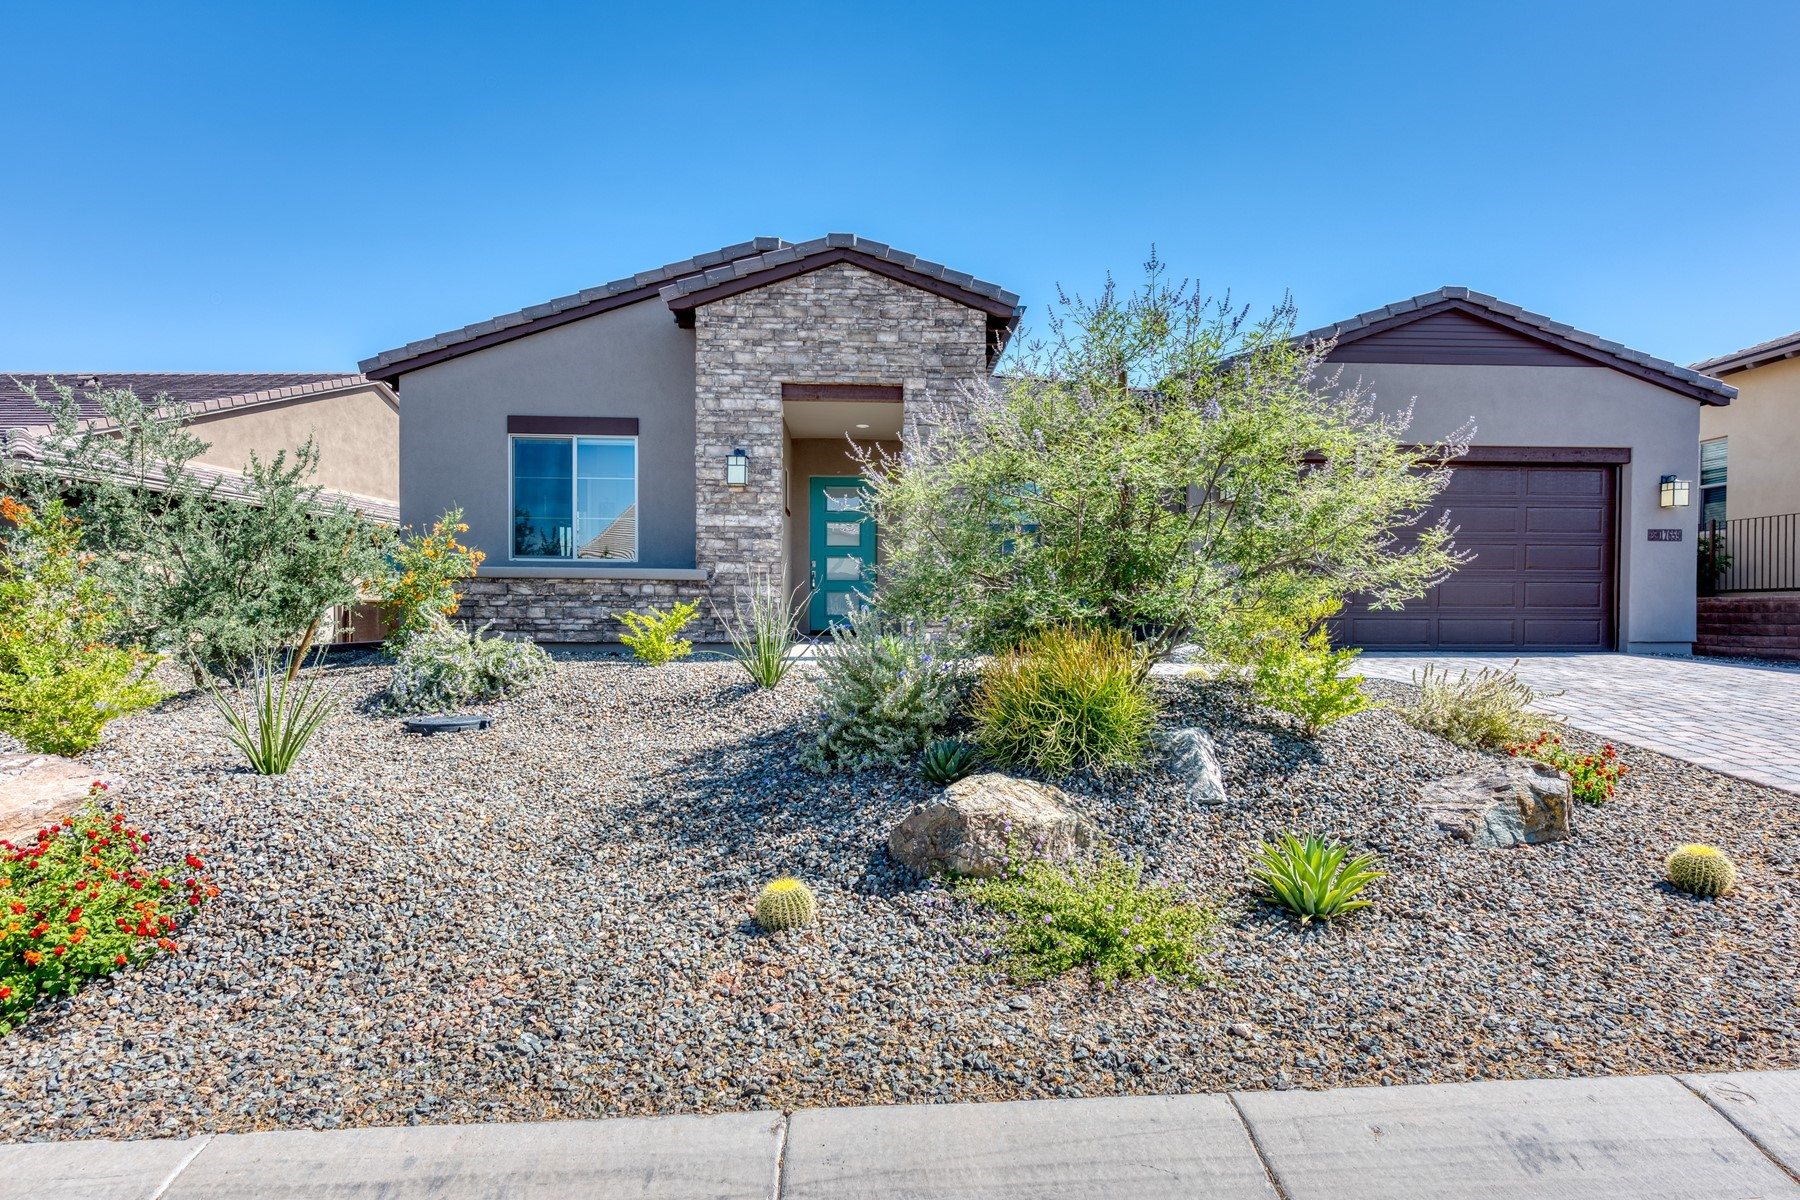 Single Family Homes for Sale at Trilogy At Verde River 17659 E FORT VERDE RD Rio Verde, Arizona 85263 United States